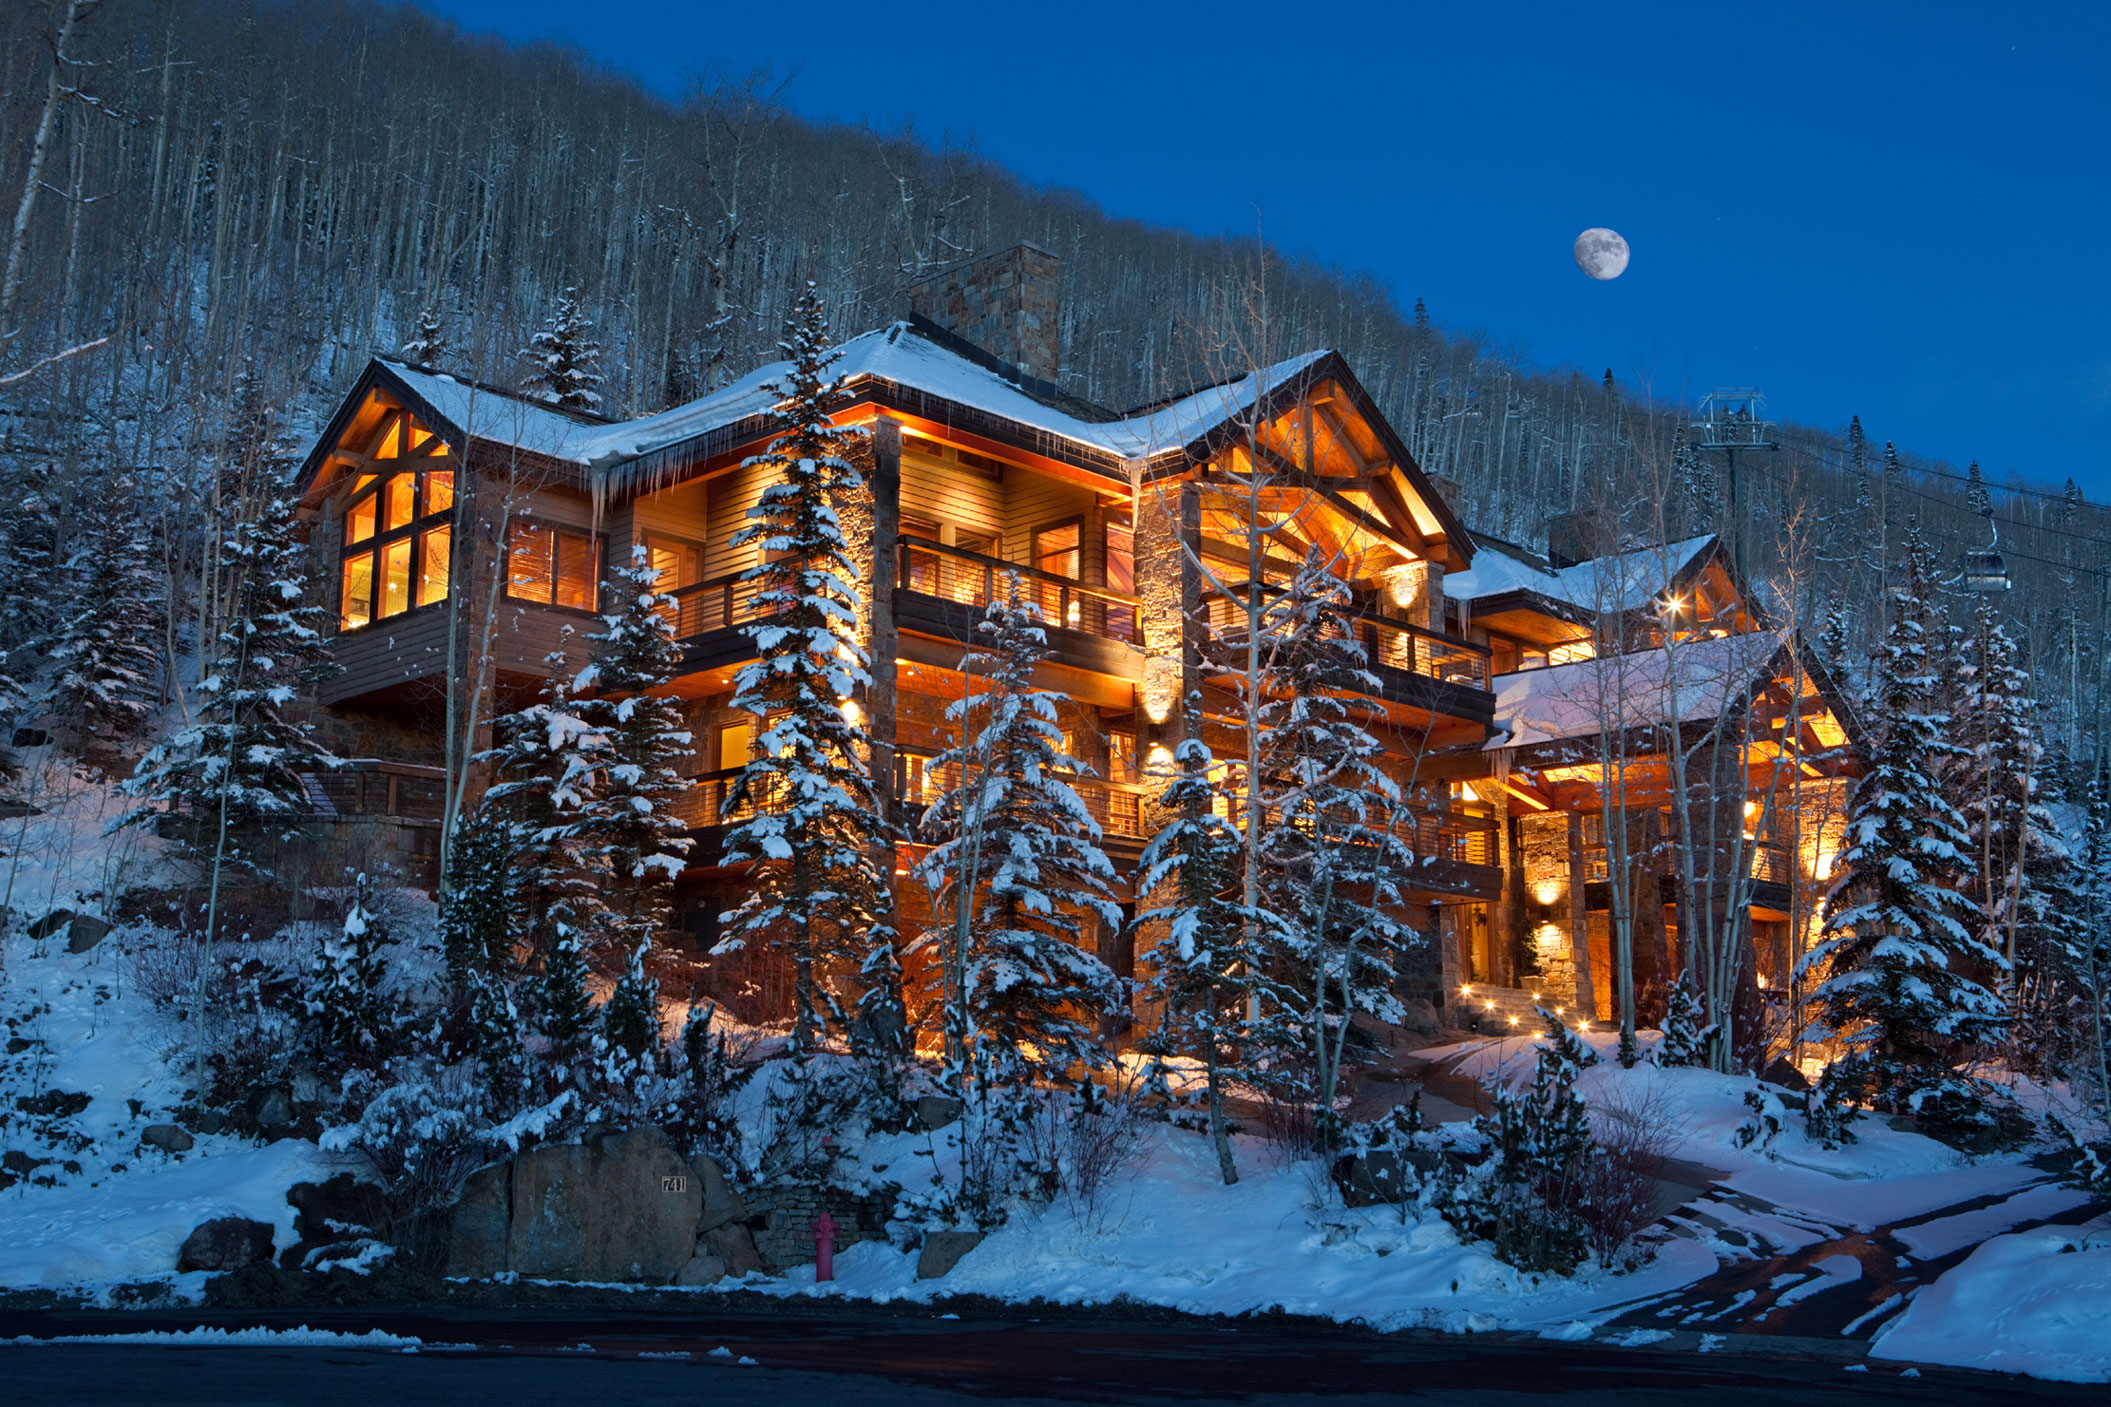 This majestic mountain estate has direct access to the ski trails, the gondola, and all the amenities of the top-ranked U.S. ski resort of Telluride—home to such stars as Tom Cruise, Kevin Costner, and Oprah Winfrey.